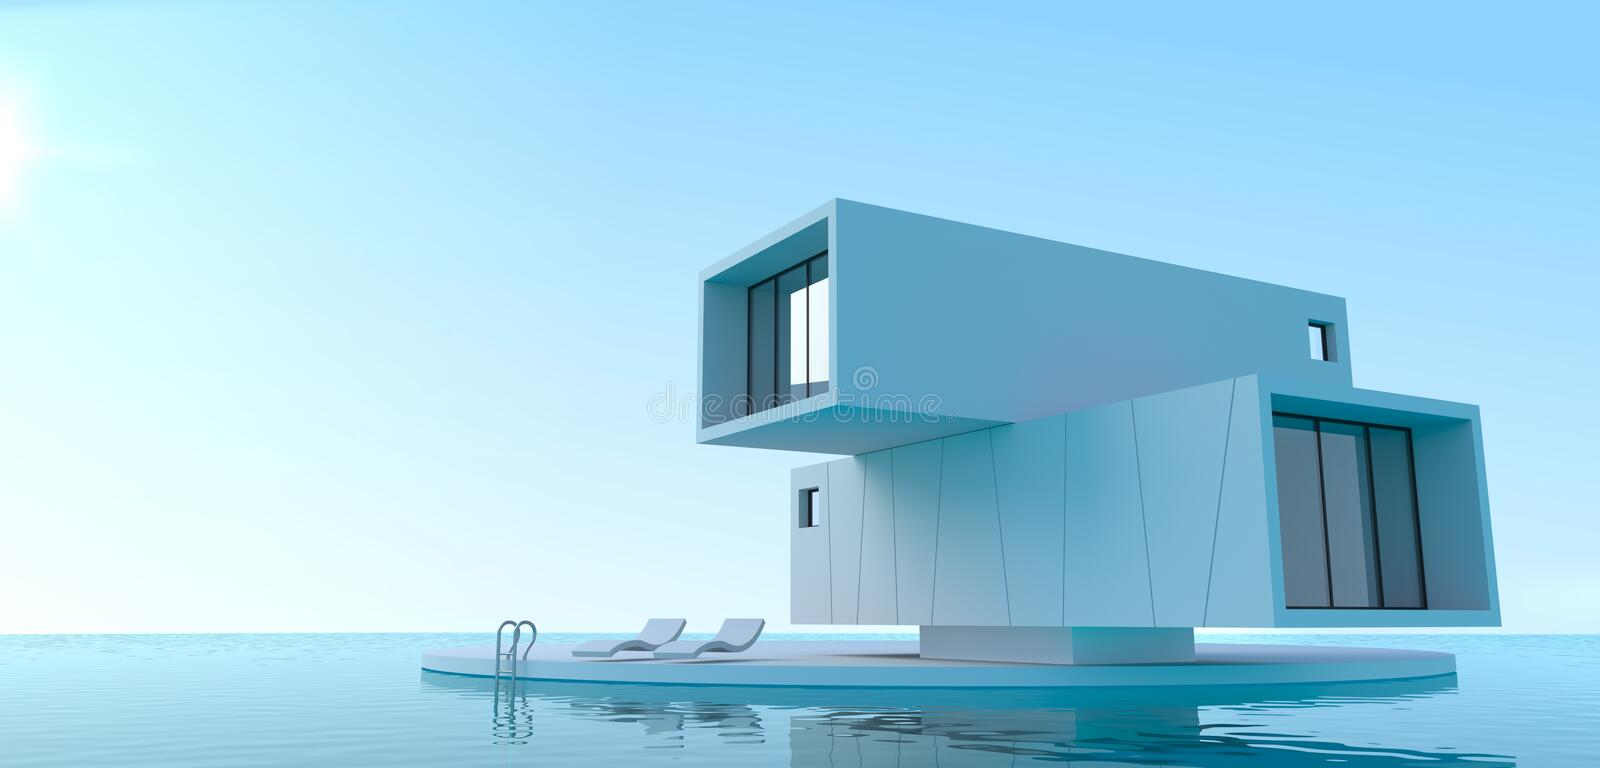 Concept minimalism villa on the sea. 3d illustration. Concept minimalism villa on the sea. House of containers. Pool vector illustration